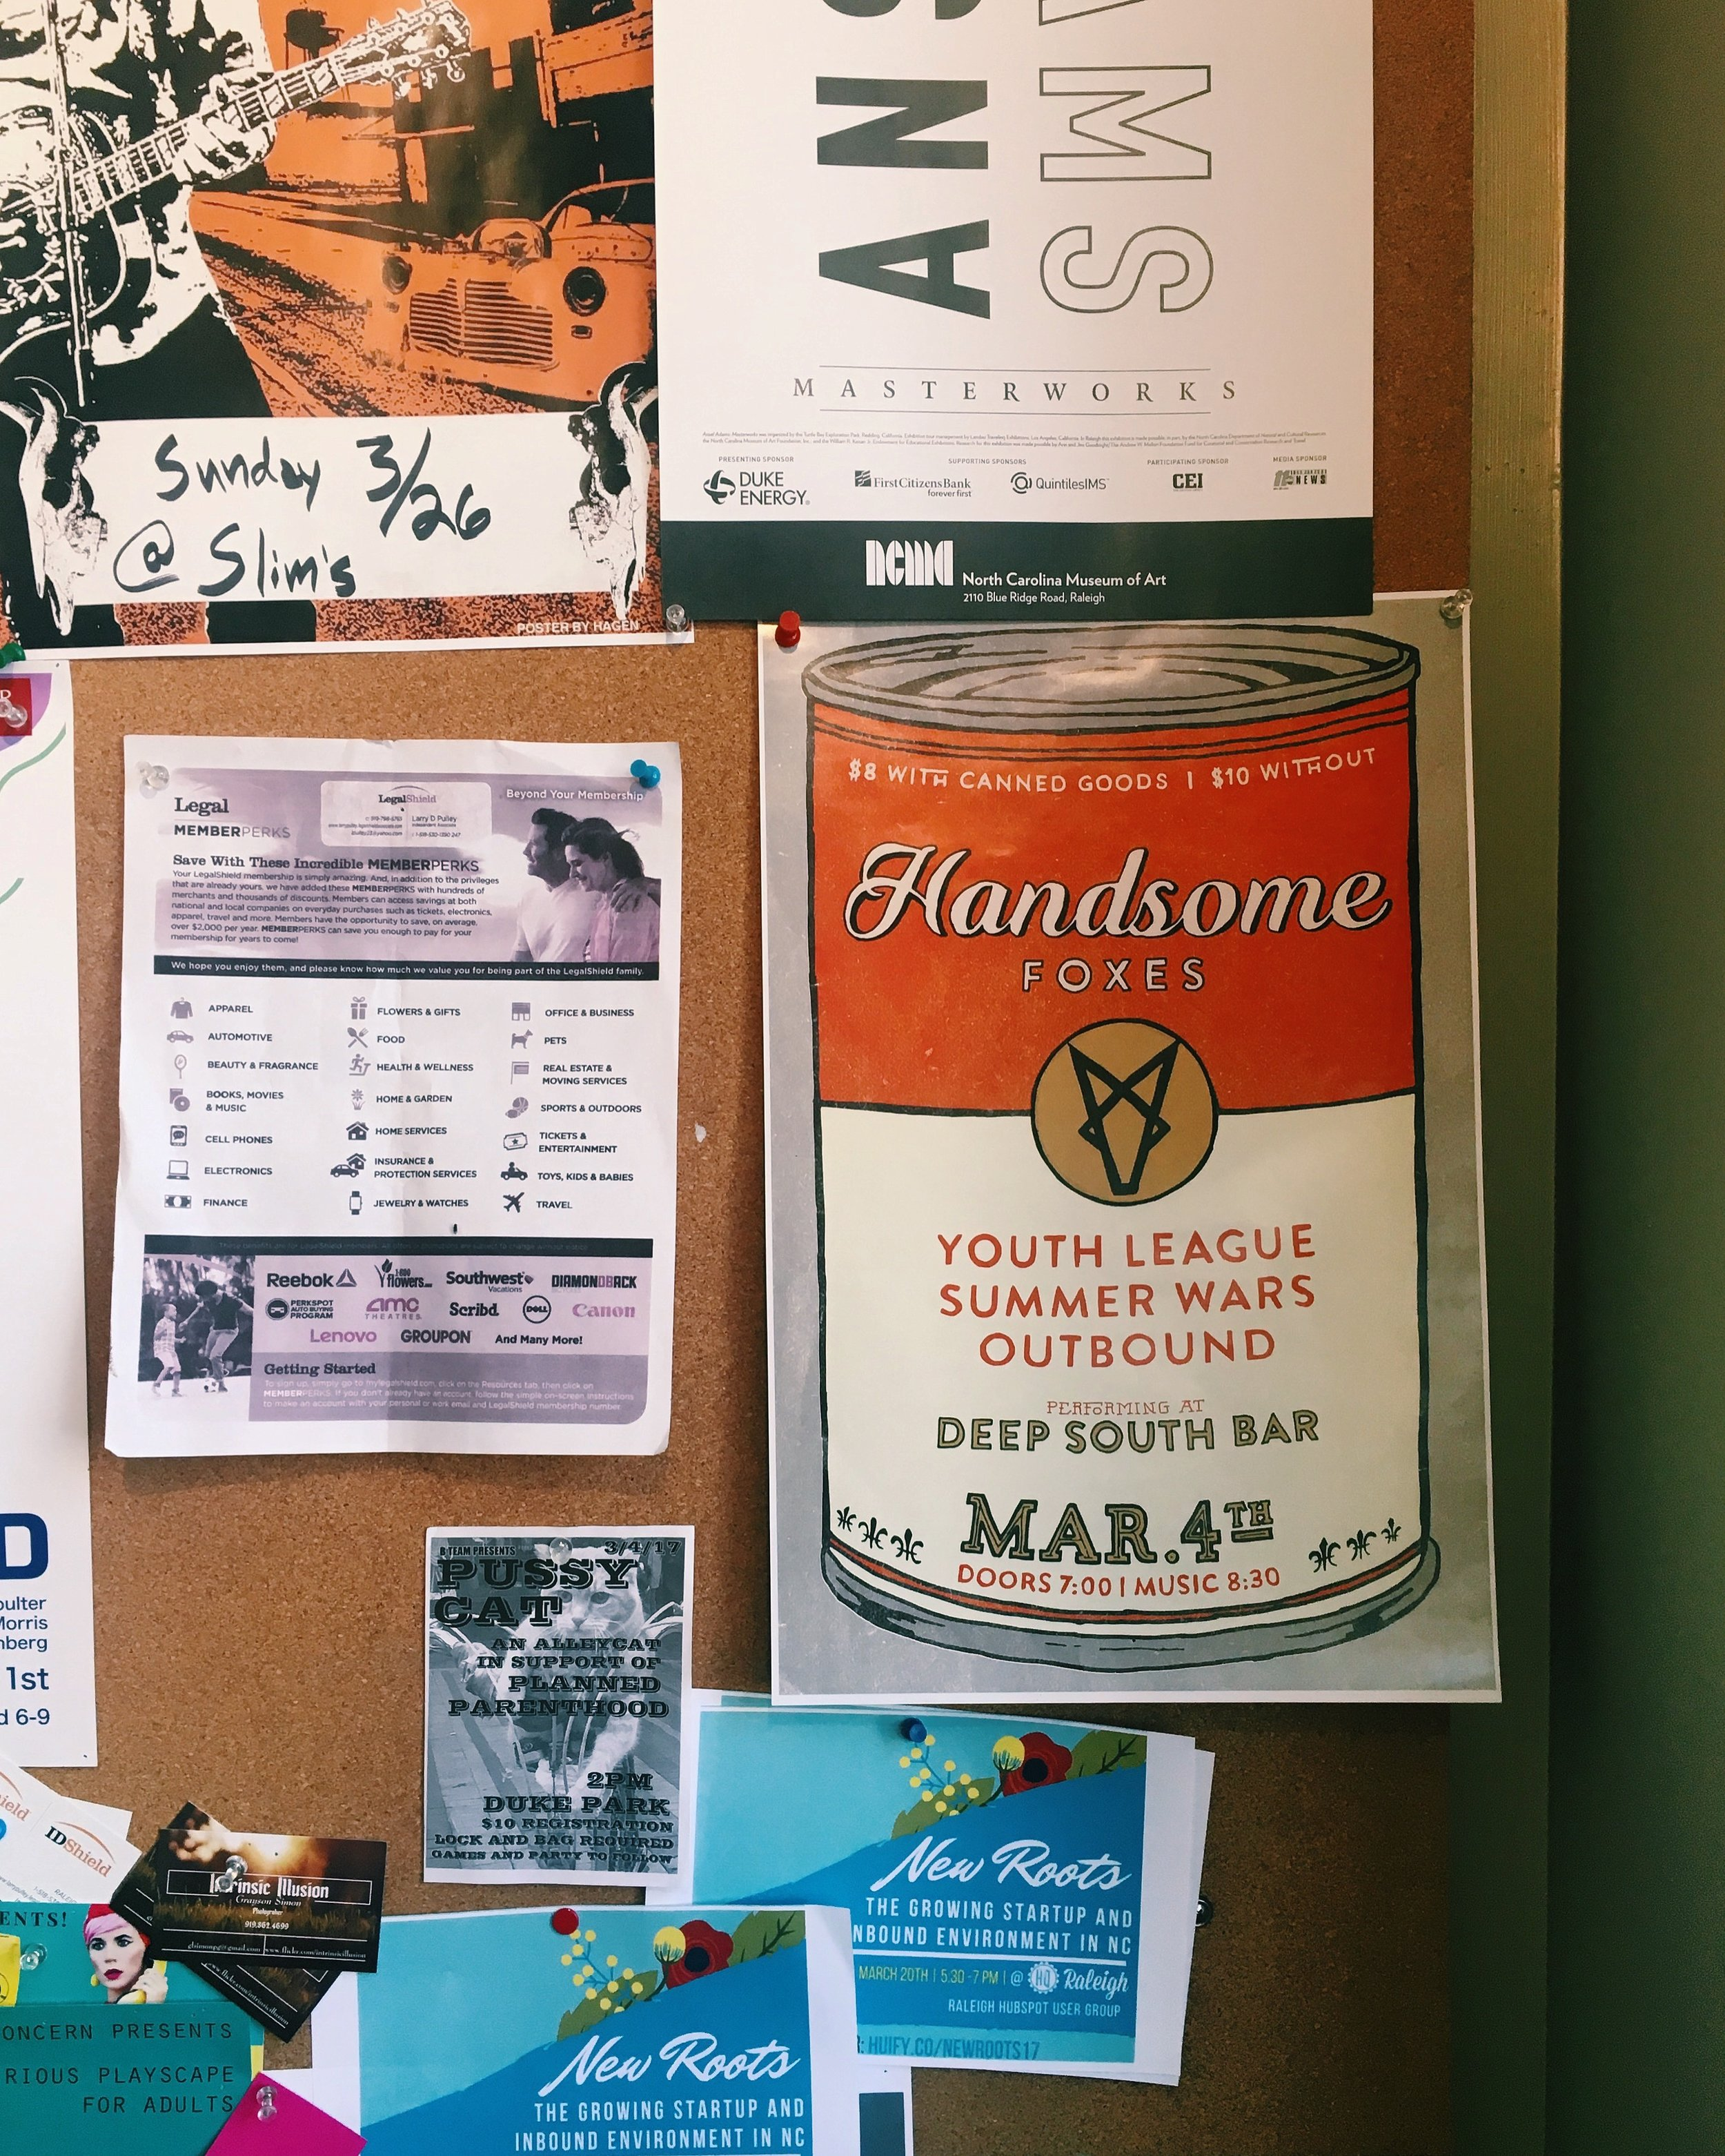 Snapshot of my favorite Handsome Foxes flyerup at a Raleigh coffee shop.